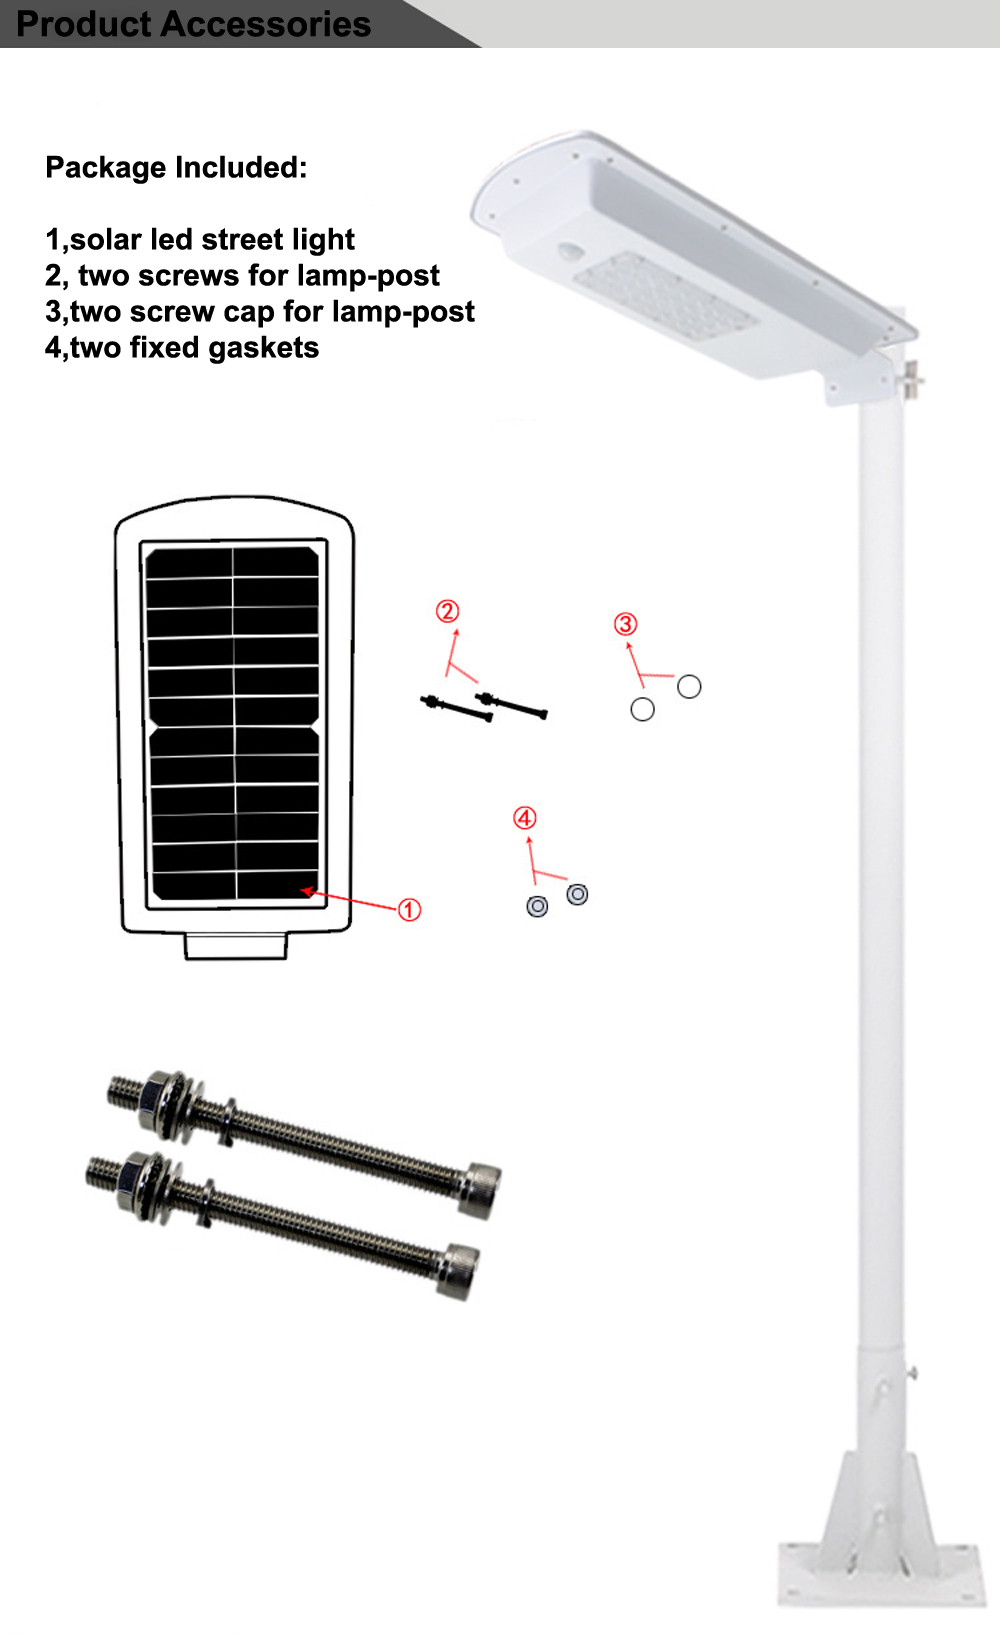 GO OCEAN Solar Lamps LED Solar Waterproof Wall Integrated LED Street Light Solar Lamp Motion Sensor Outdoor Garden Light (13)